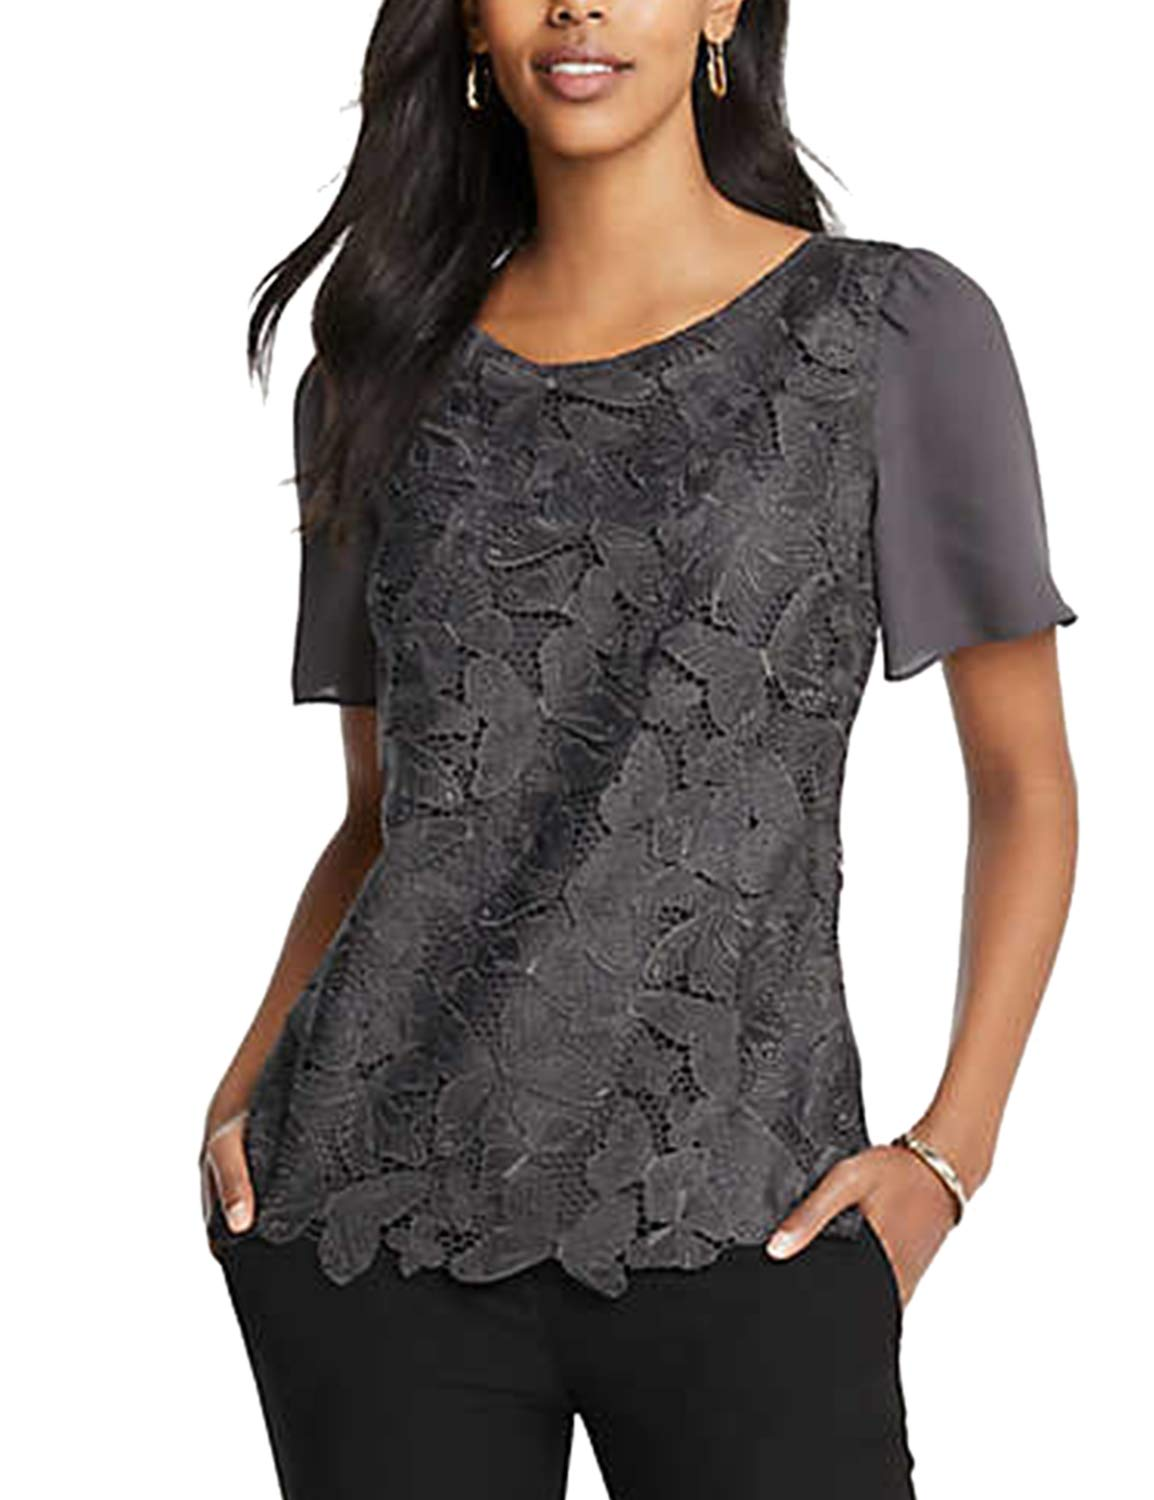 Blooming Jelly Womens Lace Top Chiffon Casual Tops Short Sleeve T Shirts Butterfly Tee Shirt Grey